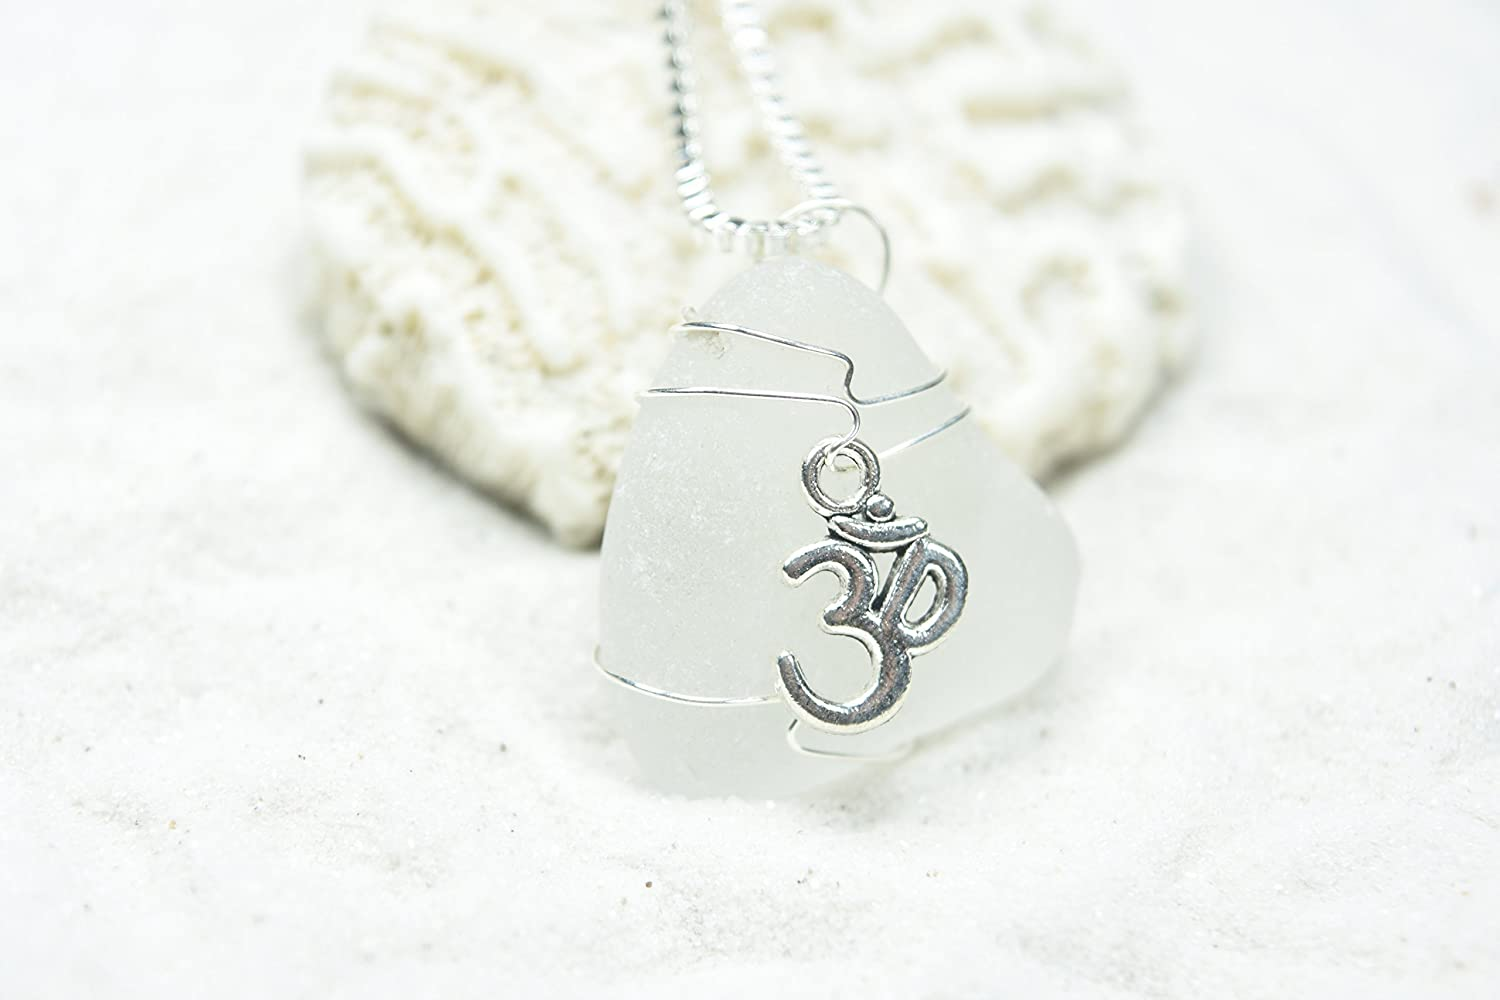 White Sea glass pendant with sterling silver choker